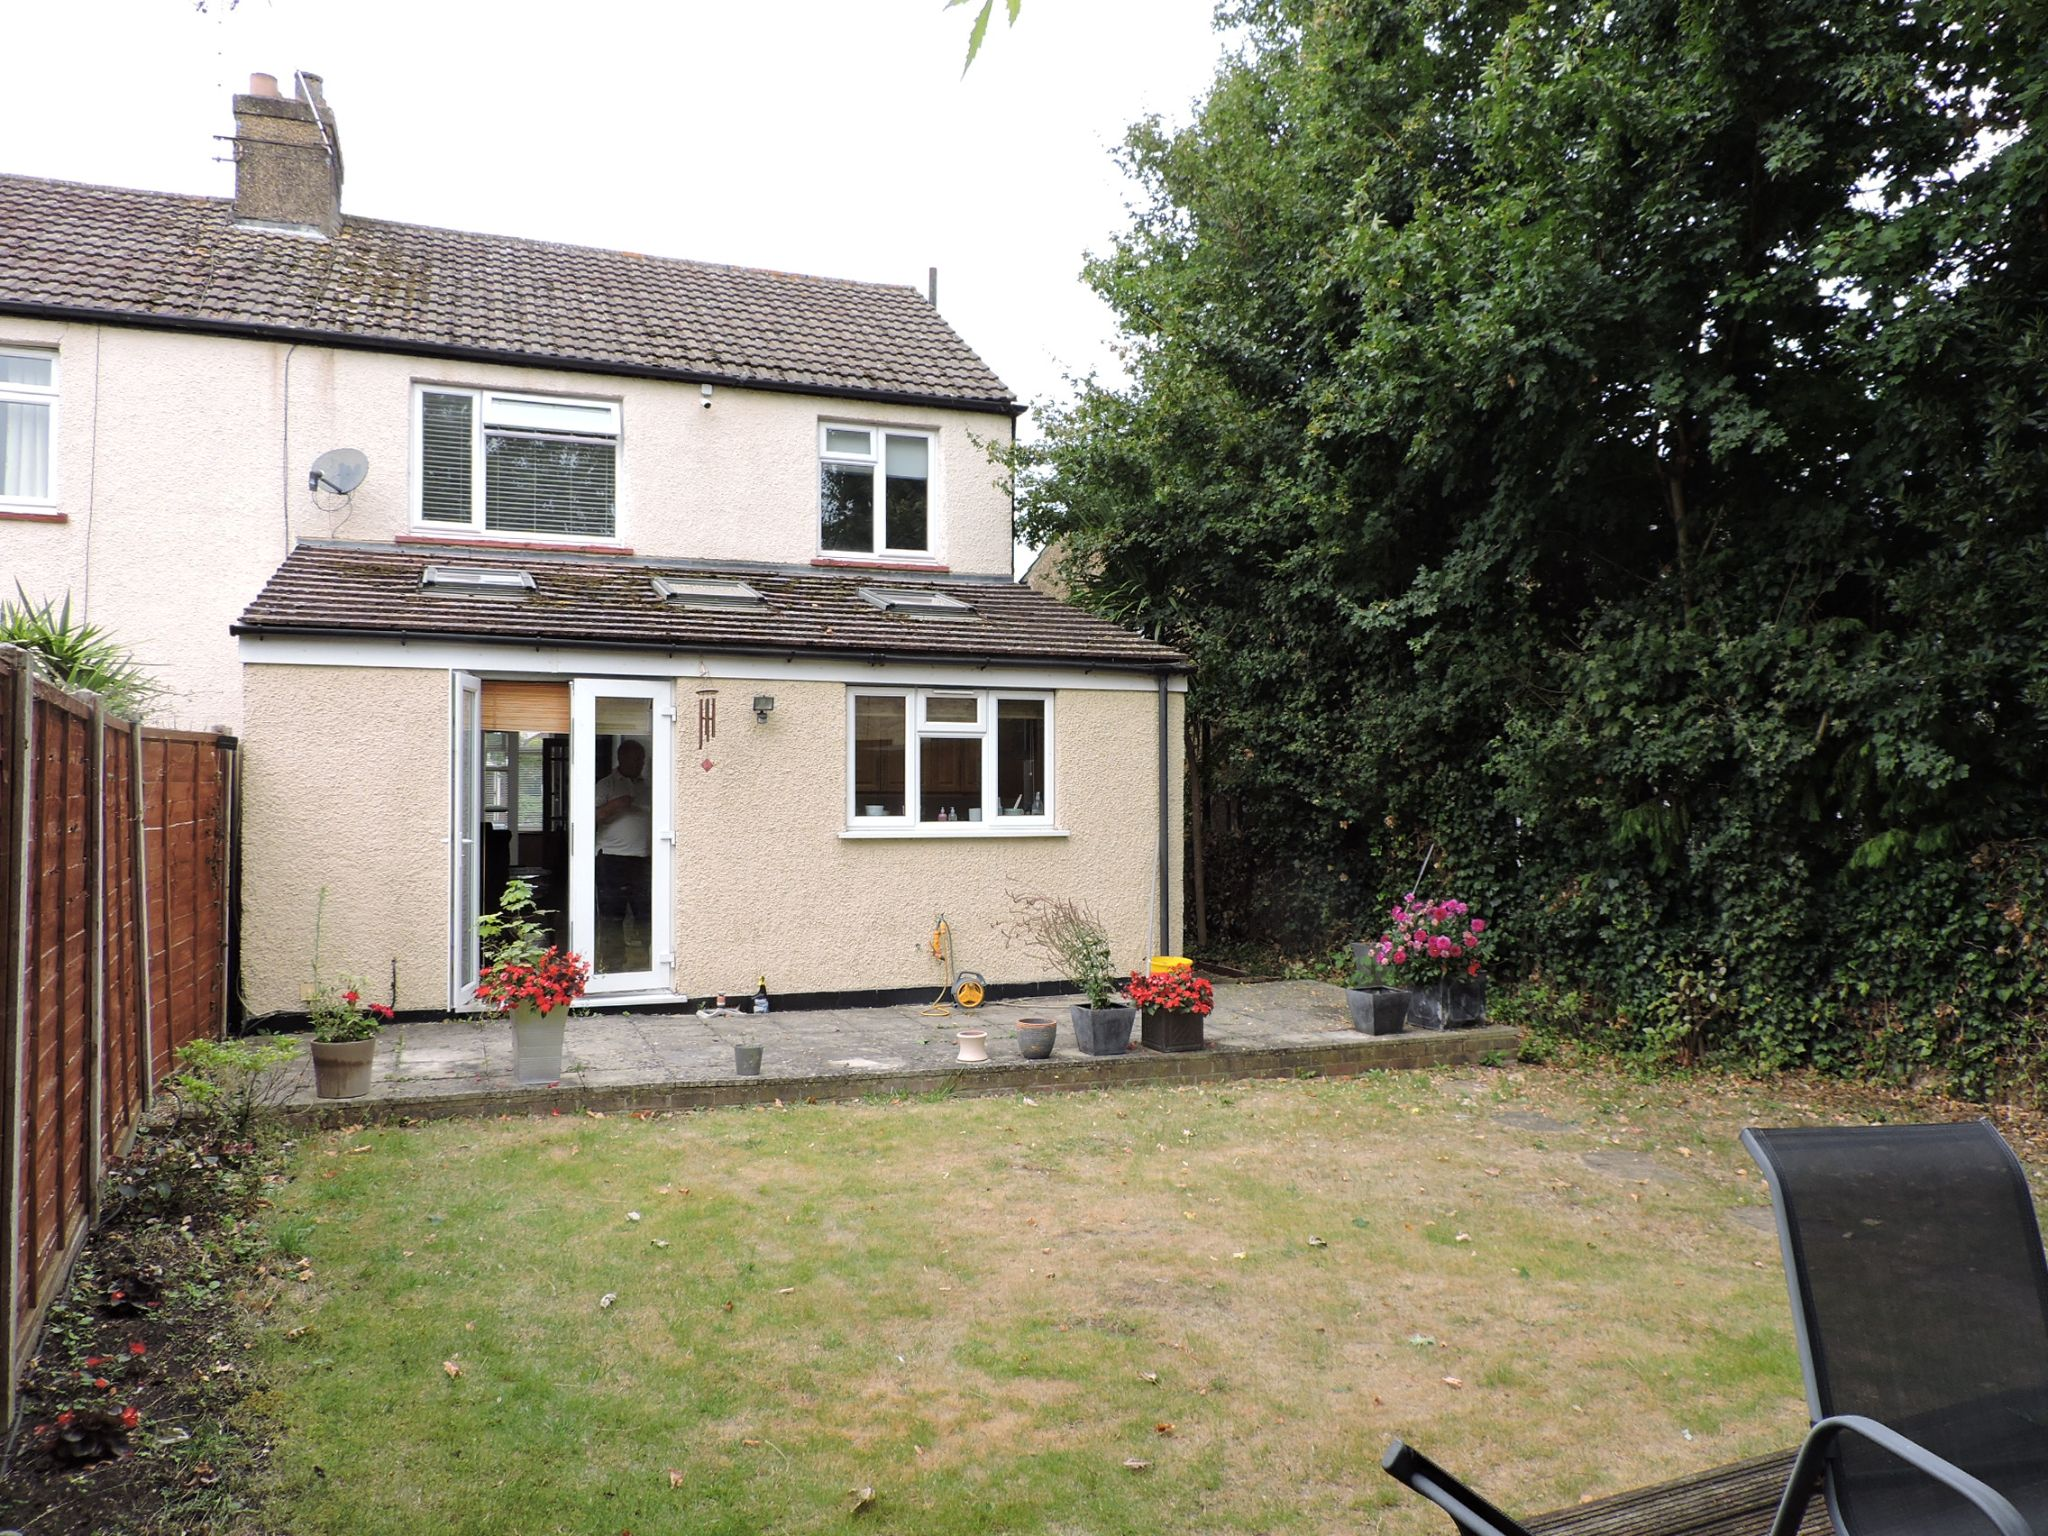 3 bedroom semi-detached house For Sale in Surbiton - Photograph 17